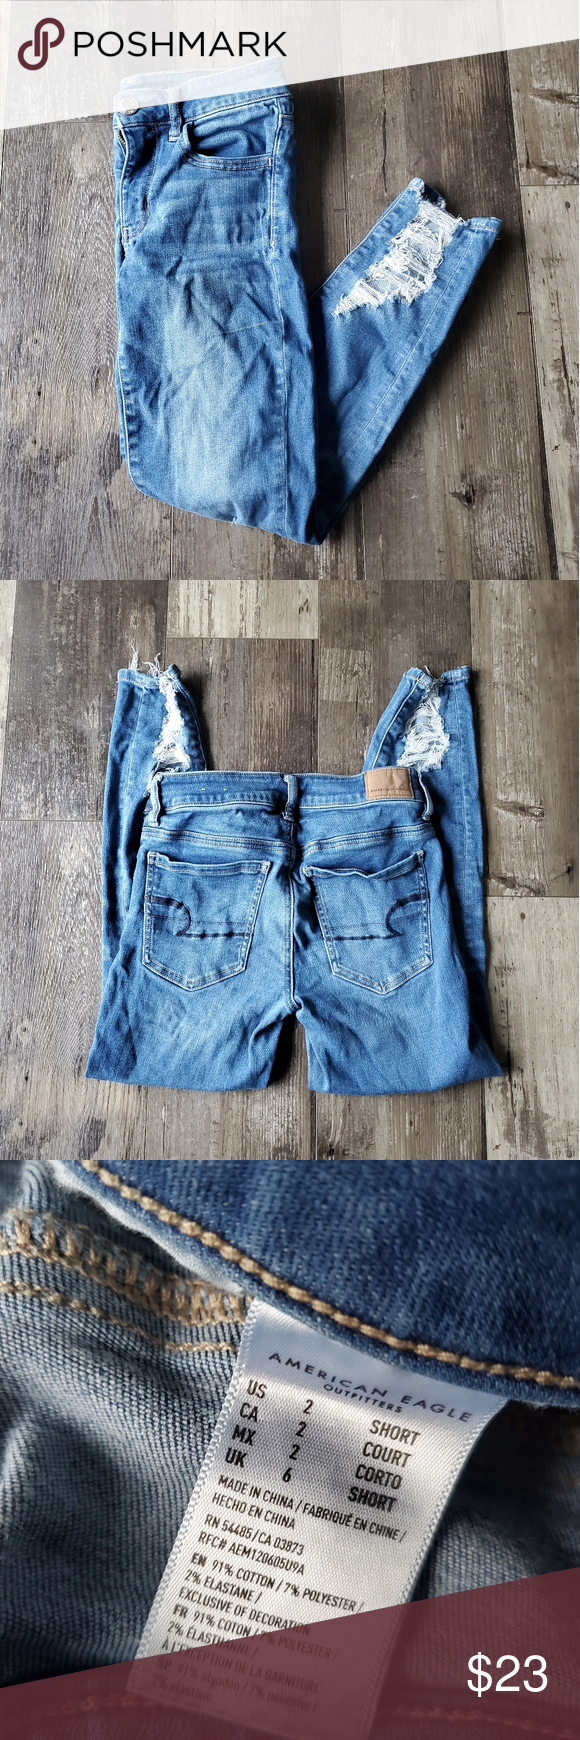 Www Made Com Fr american eagle jeans 2 great condition ae jean's women's